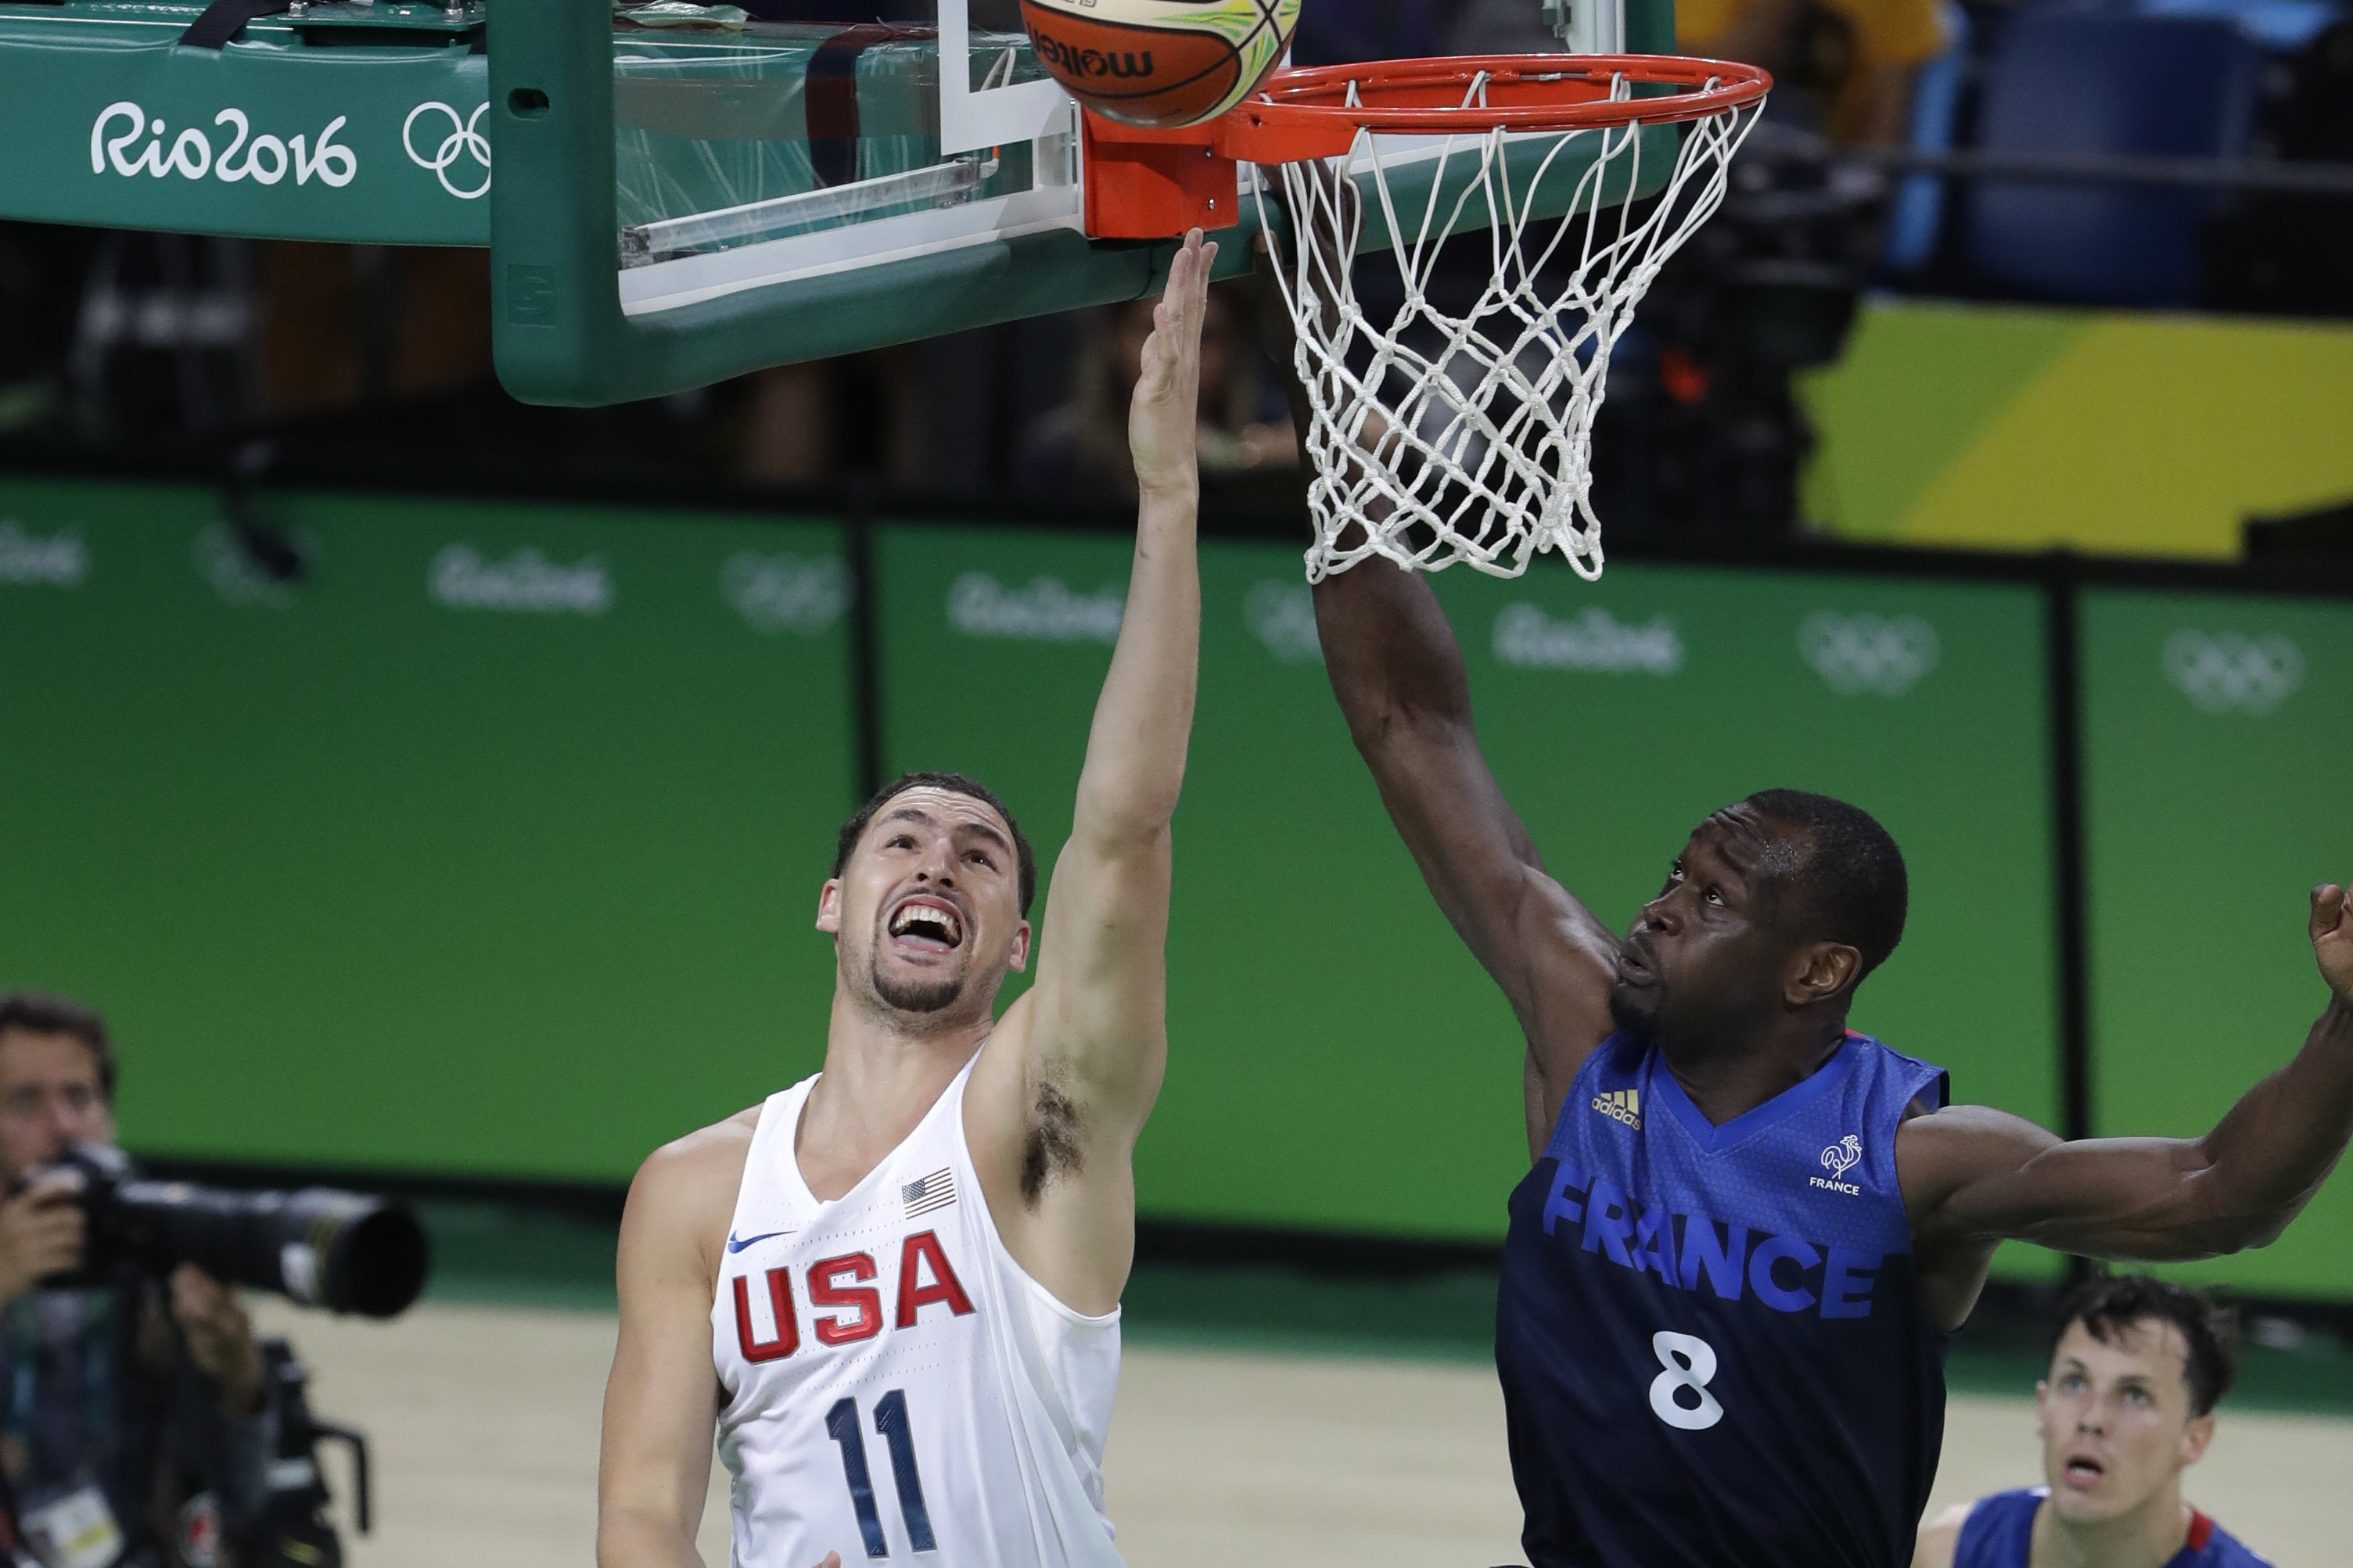 United States' Klay Thompson (11) drives to the basket against France's Charles Kahudi (8) during a men's basketball game at the 2016 Summer Olympics in Rio de Janeiro, Brazil, Sunday, Aug. 14, 2016. (AP Photo/Eric Gay)